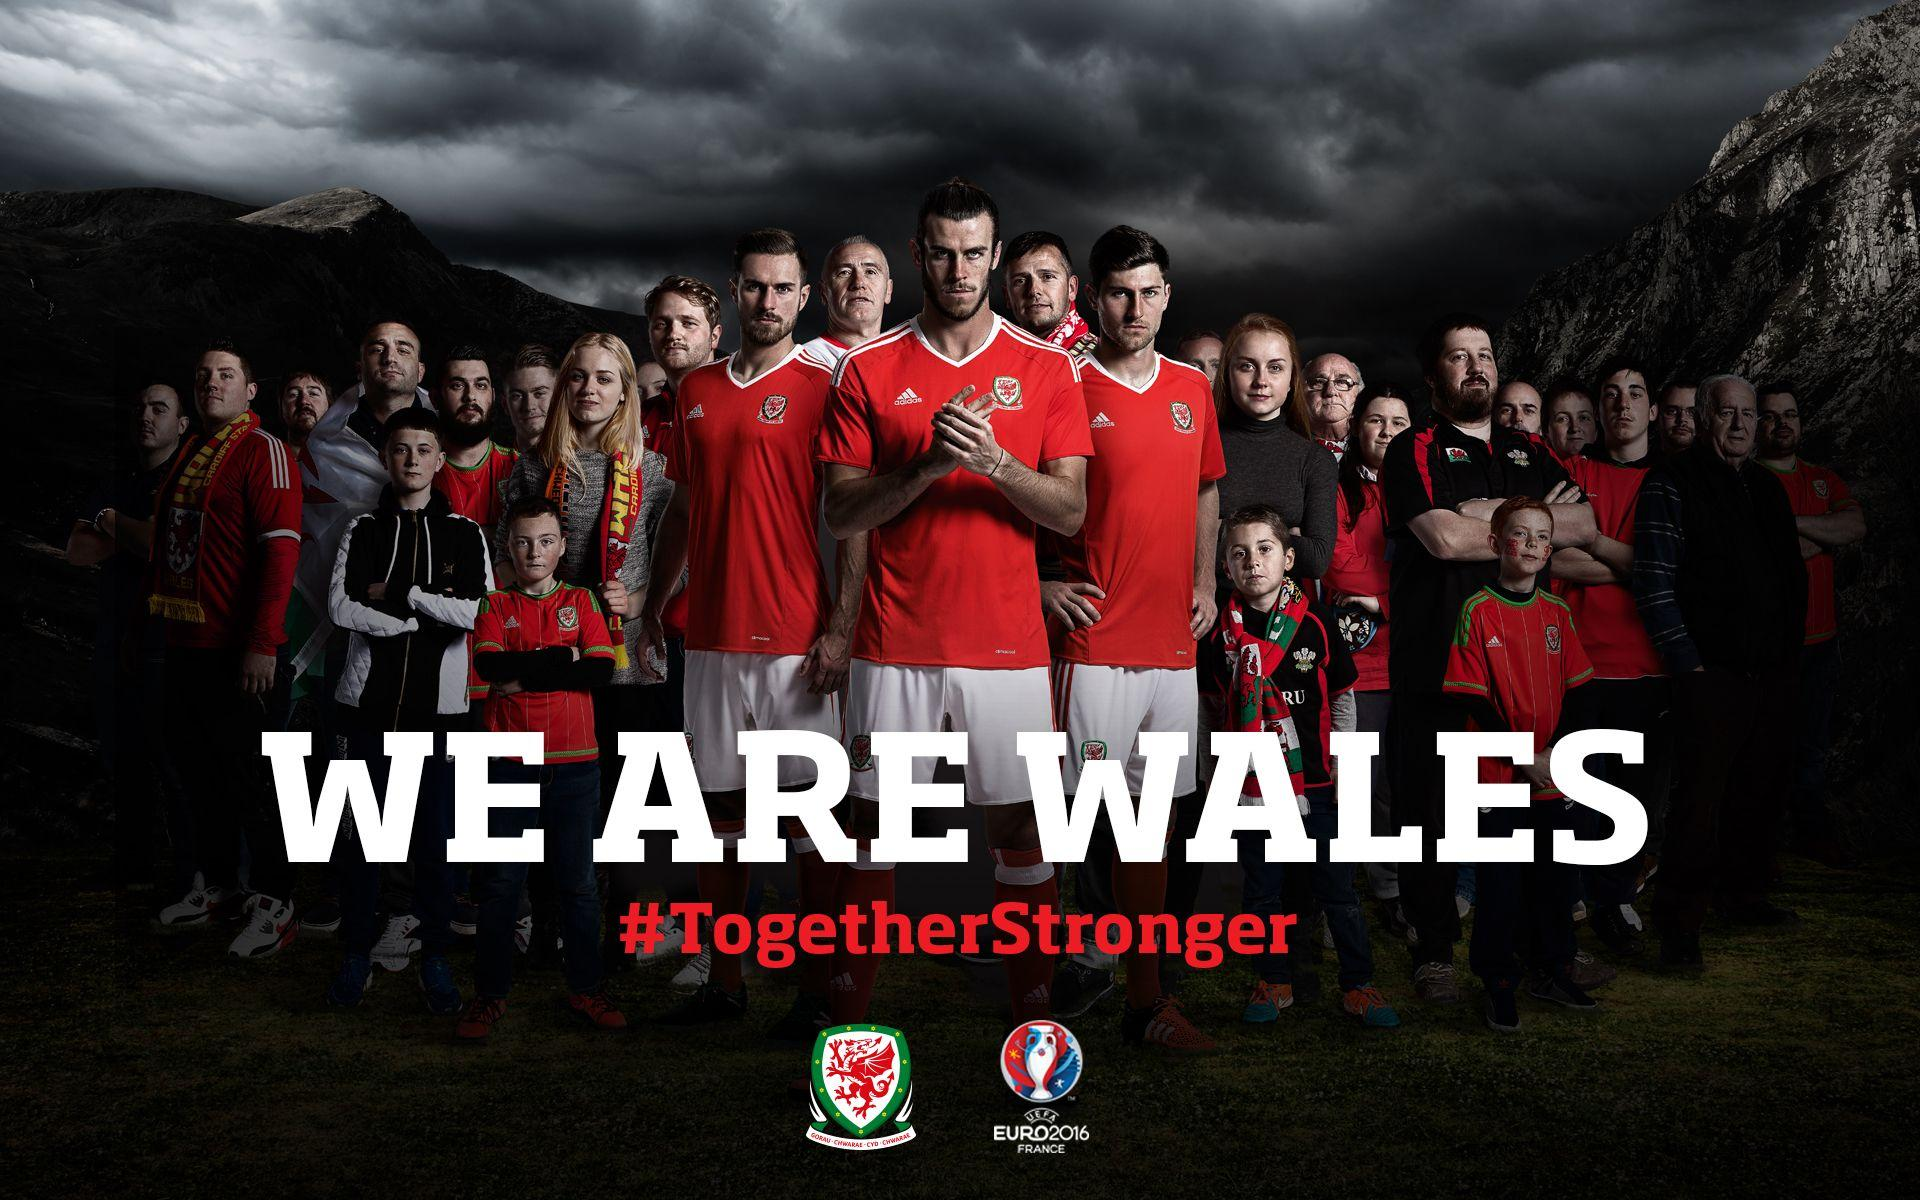 cheaper f35aa 20acb Wales National Football Team Wallpapers - Wallpaper Cave